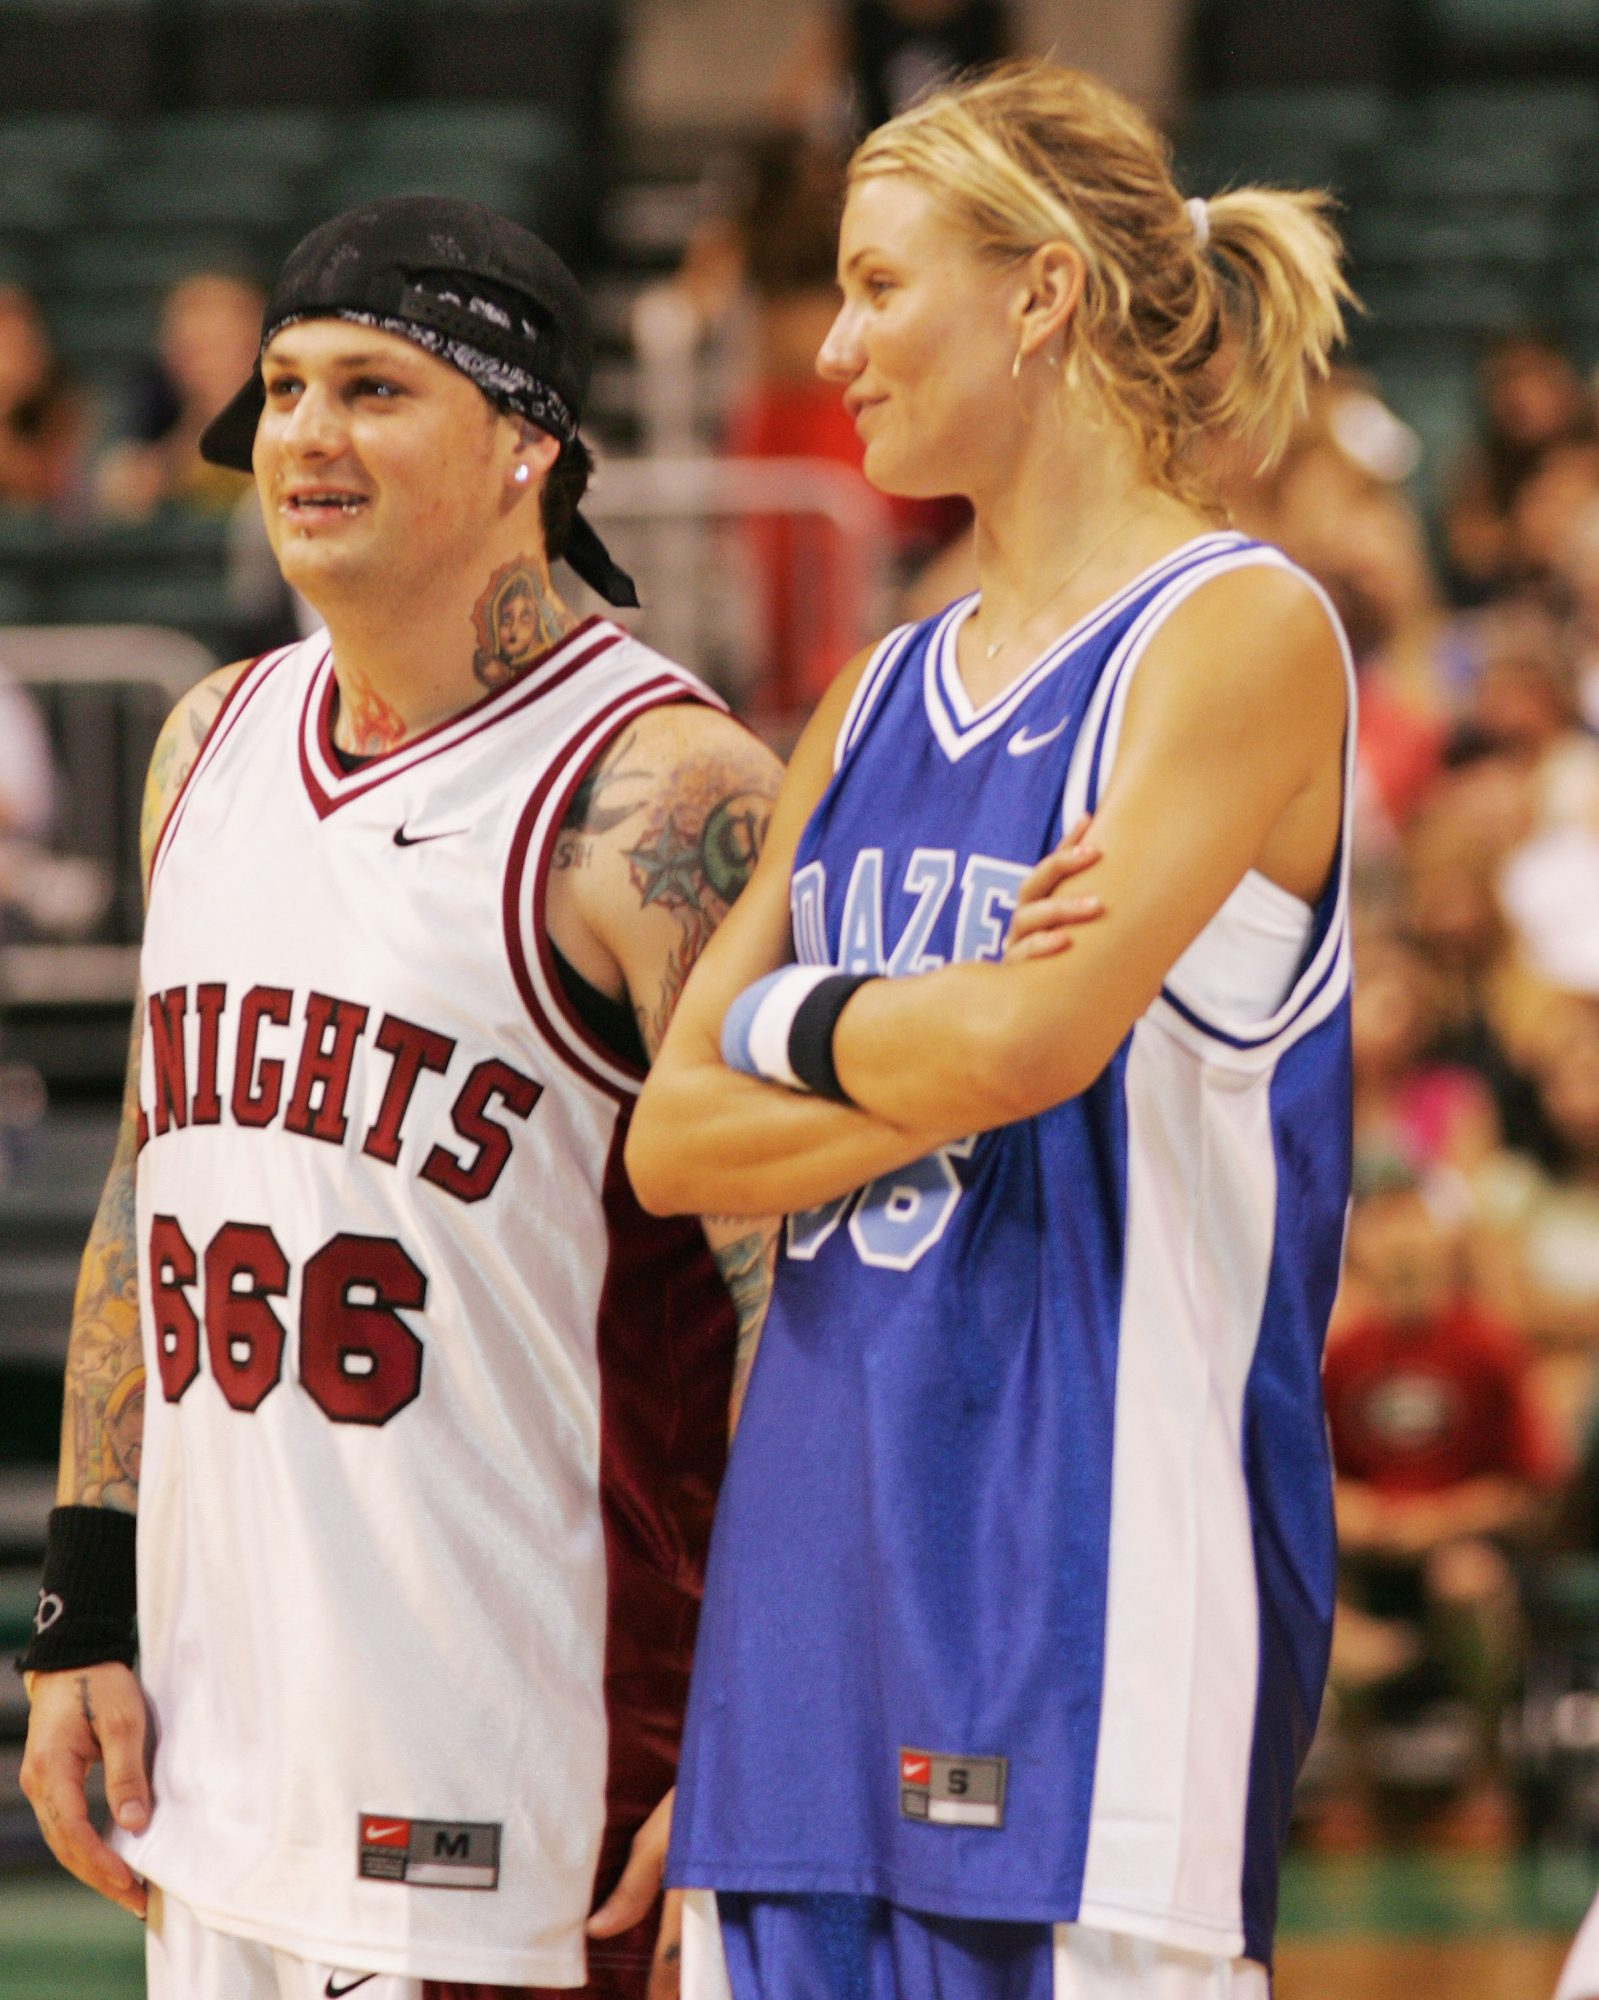 celebrity-throwback-photos-benji-madden-cameron-diaz-1215.jpg